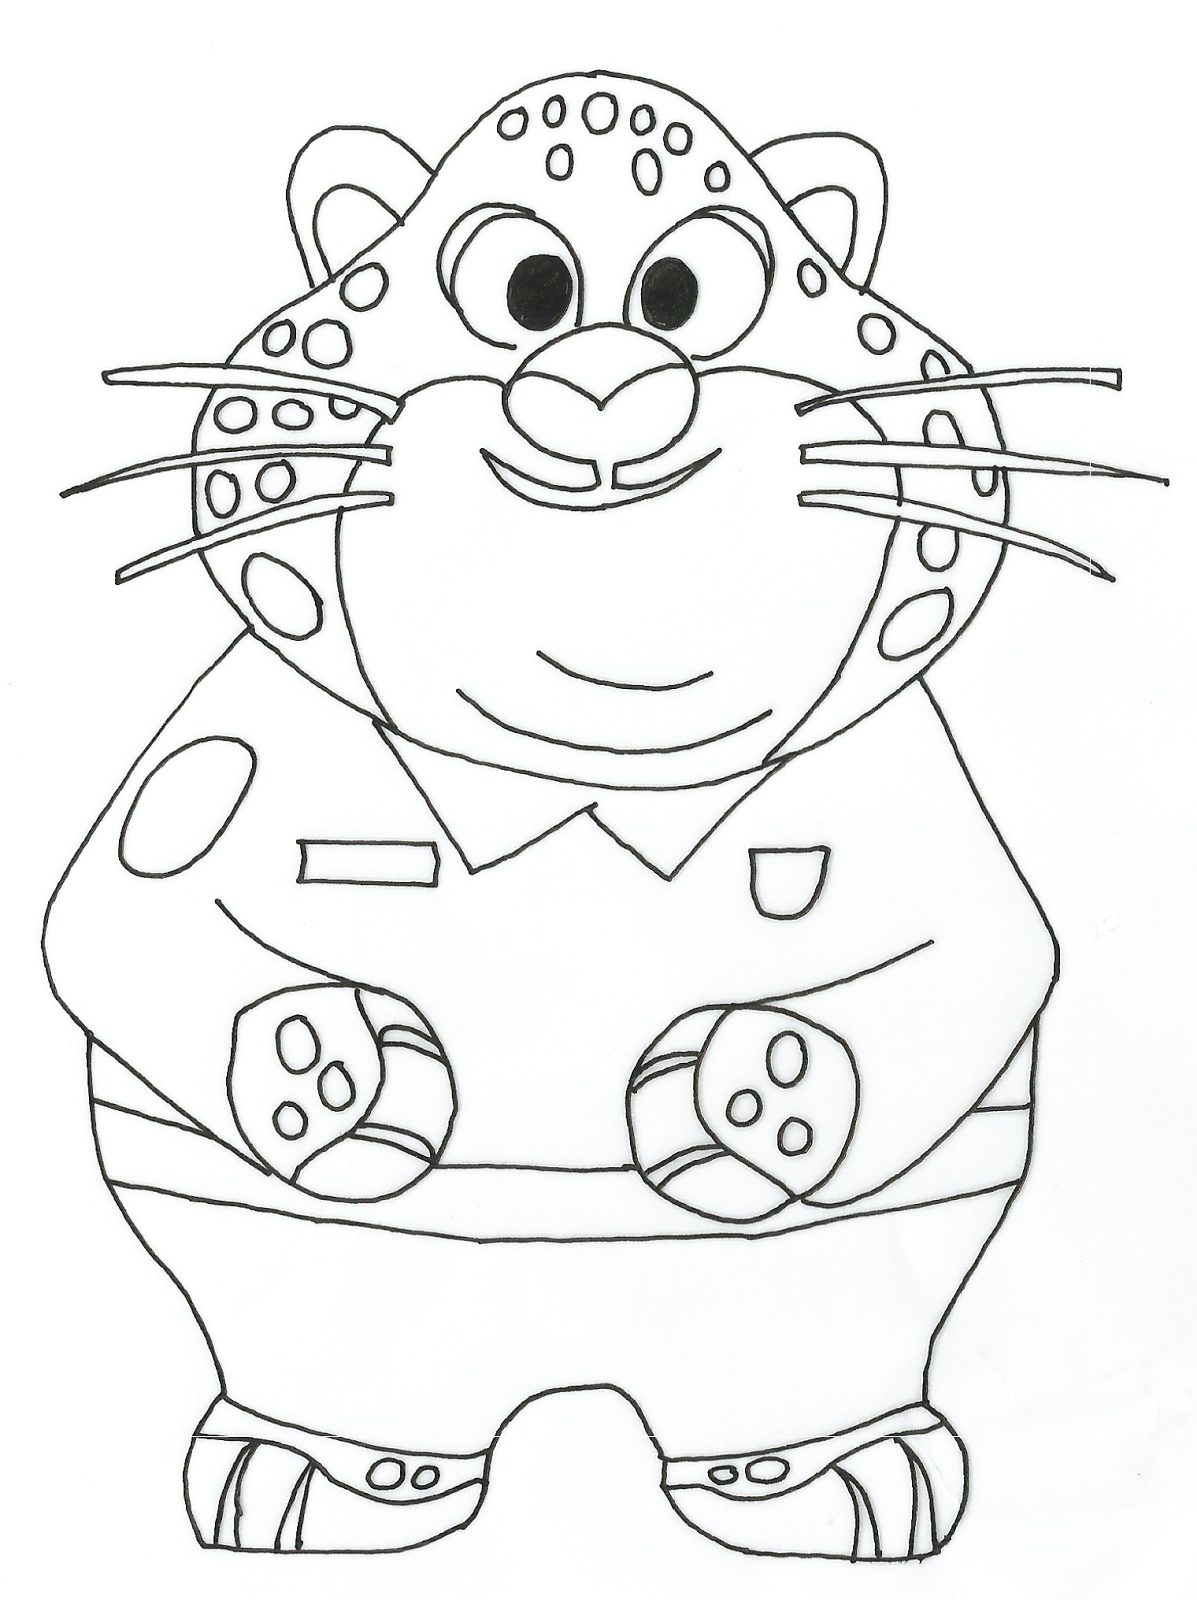 free zootopia coloring pages - photo#14